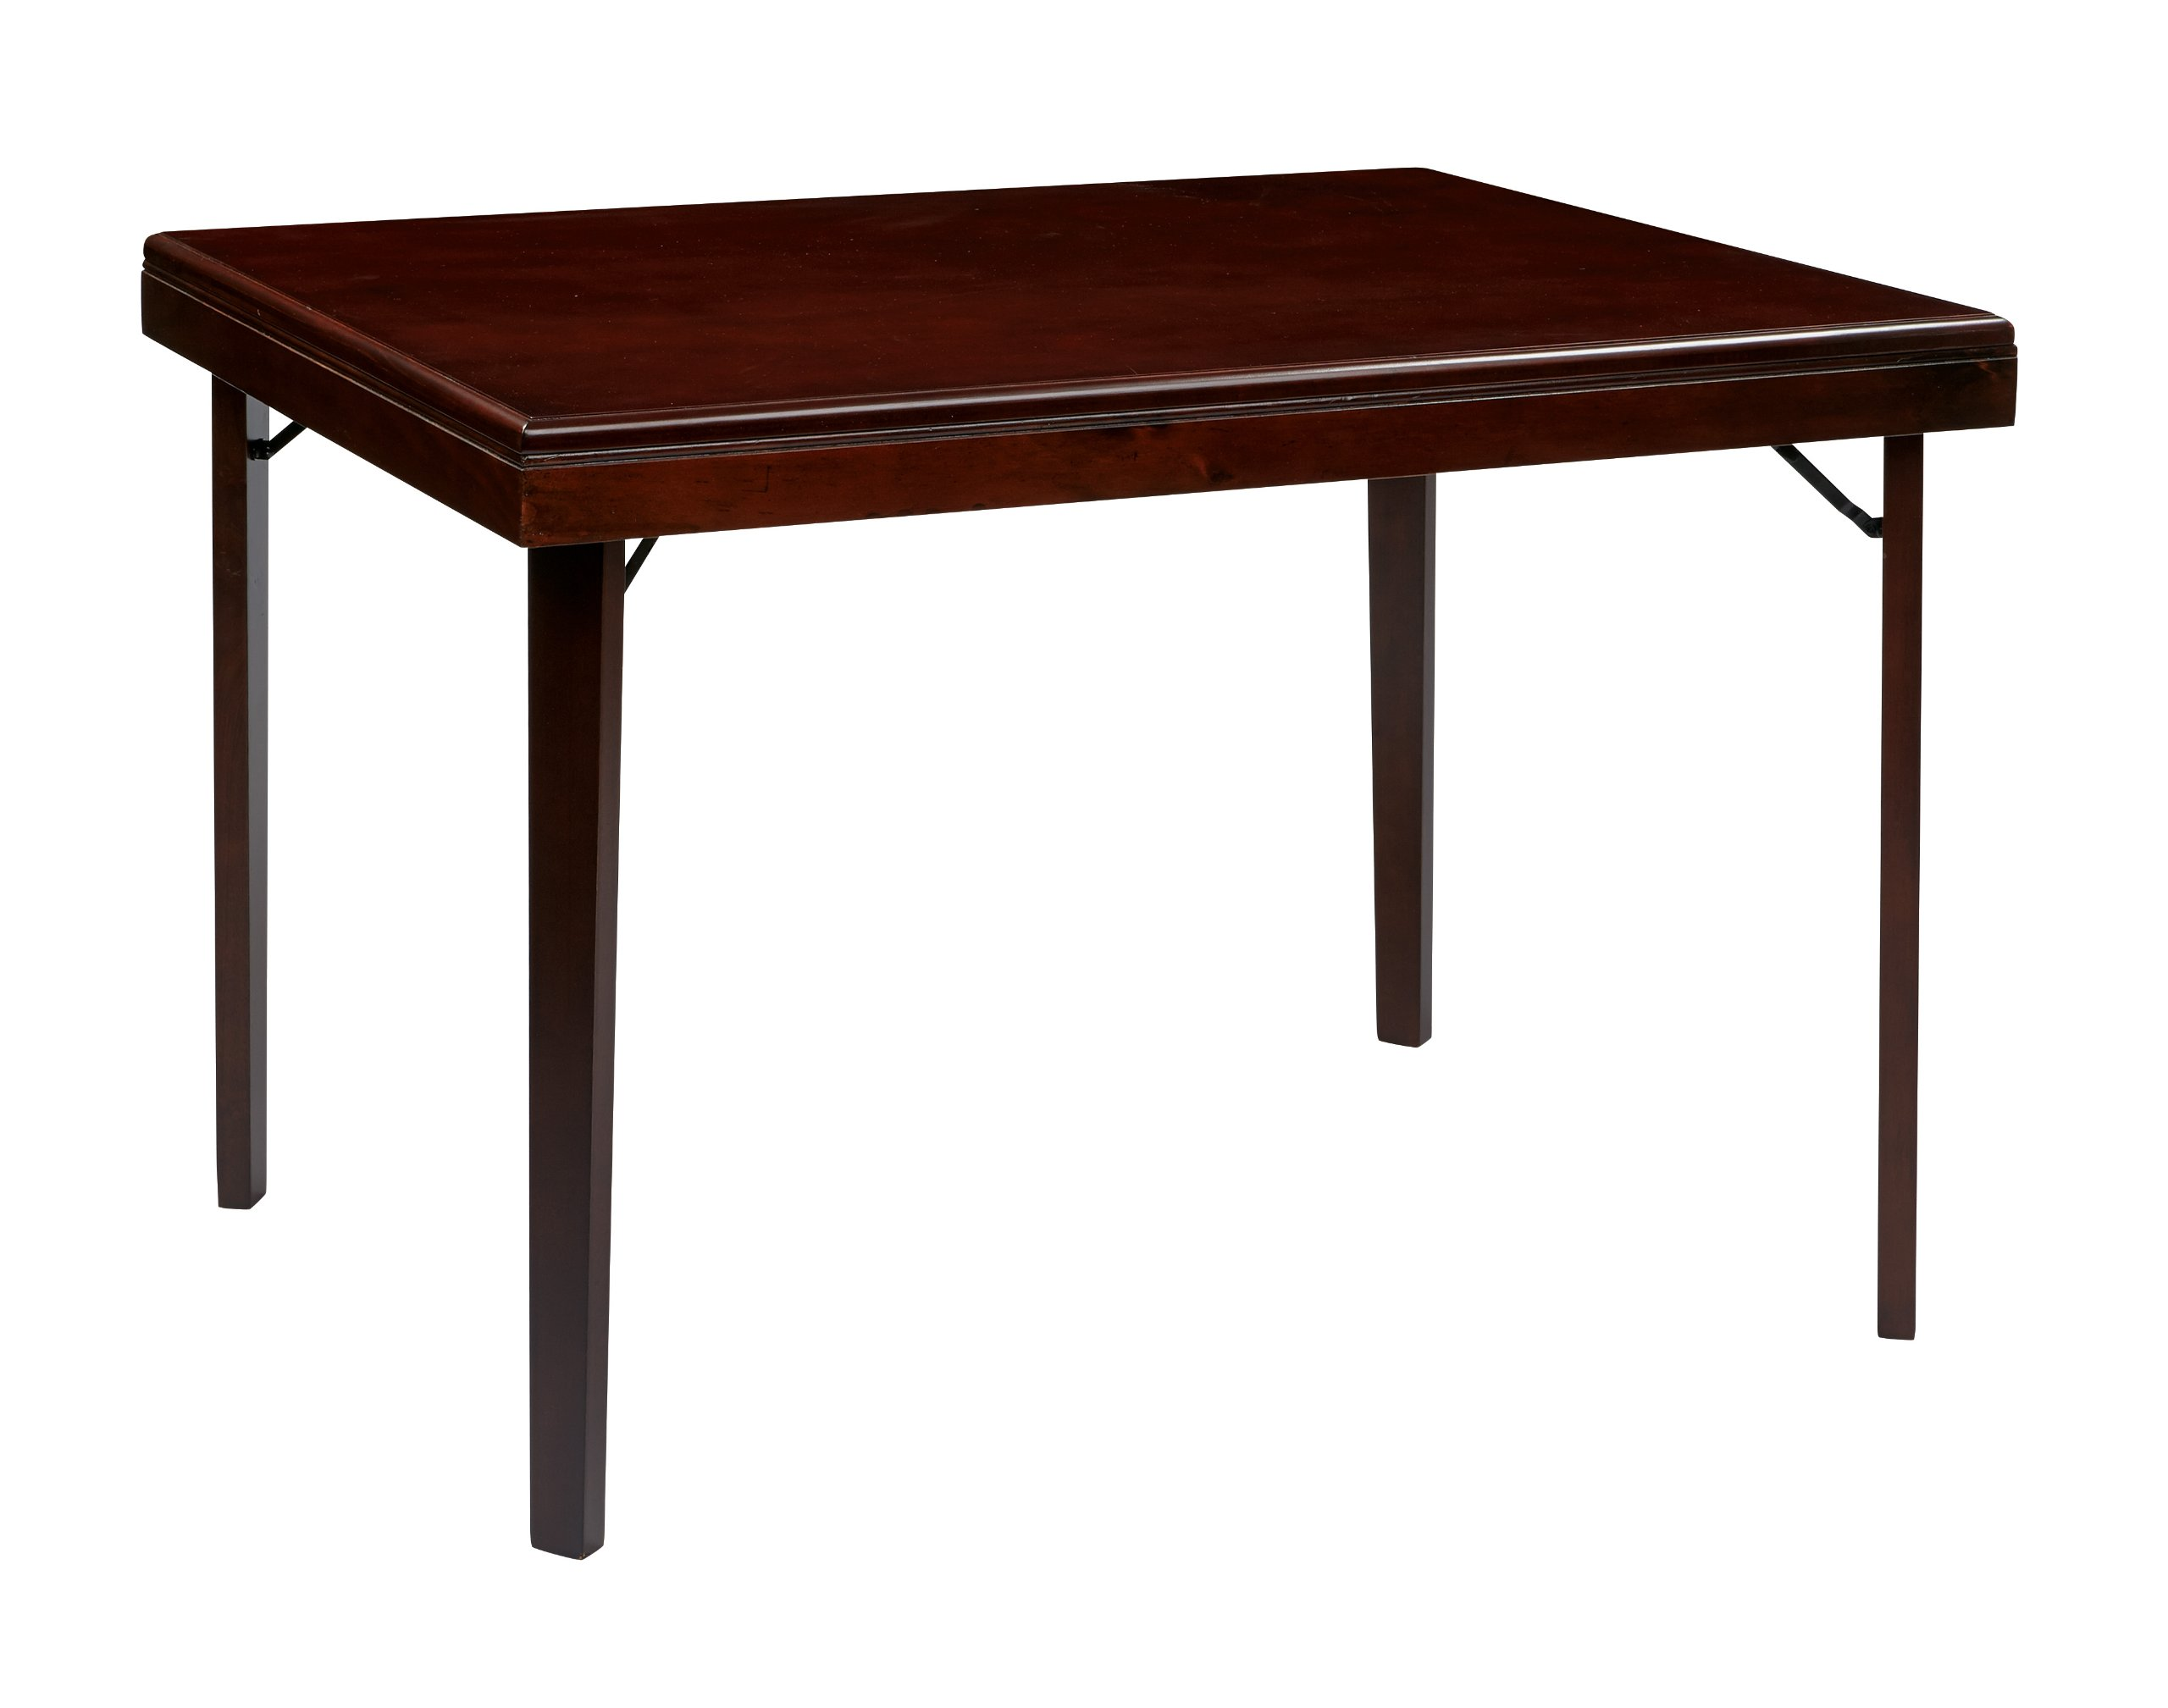 Office Star Hacienda Wood and Veneer Folding Table, Espresso by OSP Designs